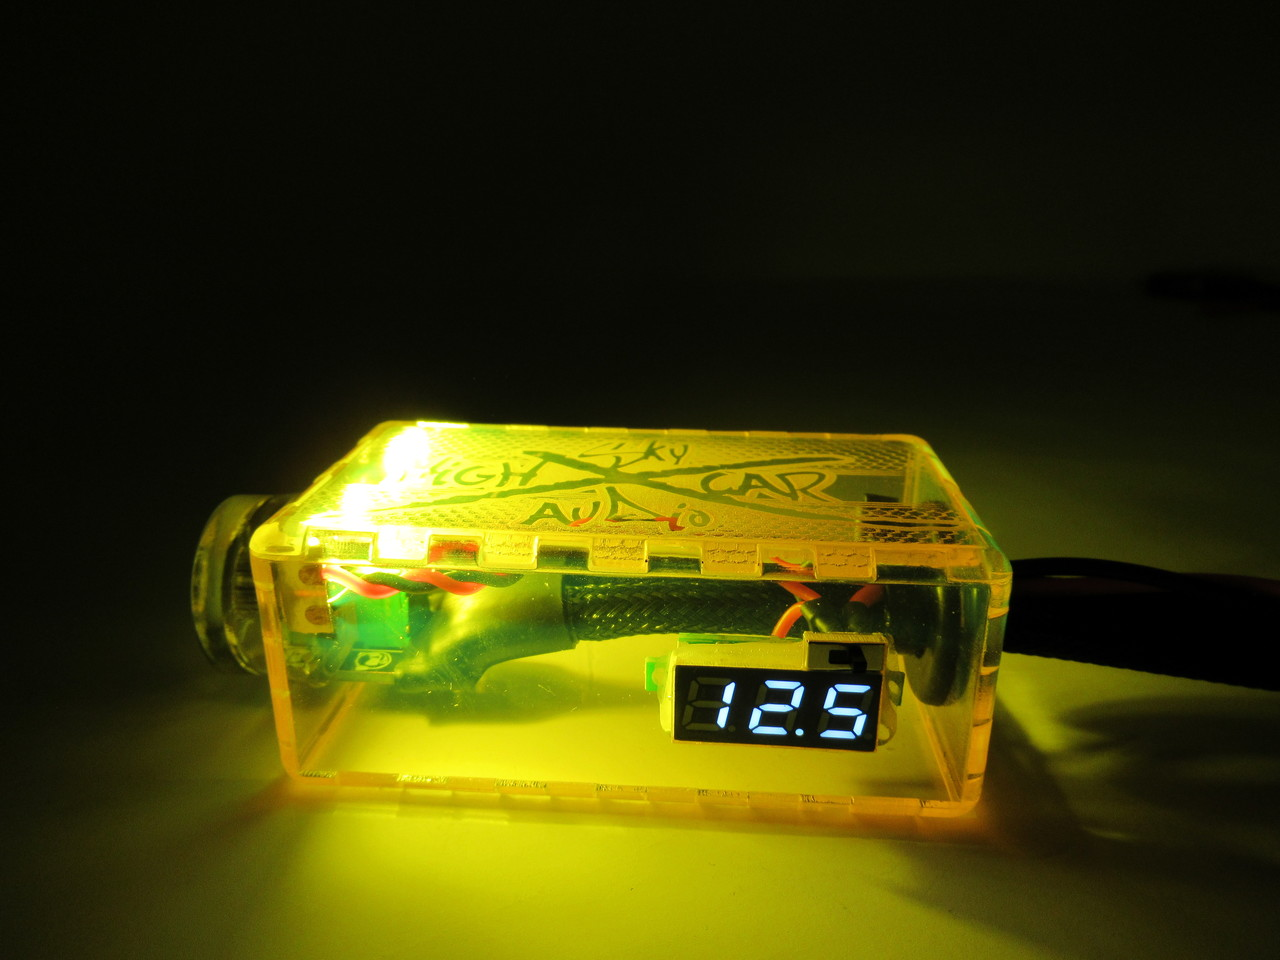 SHCA CLEAR LED BASS KNOB WITH VOLTMETER AND LEADS